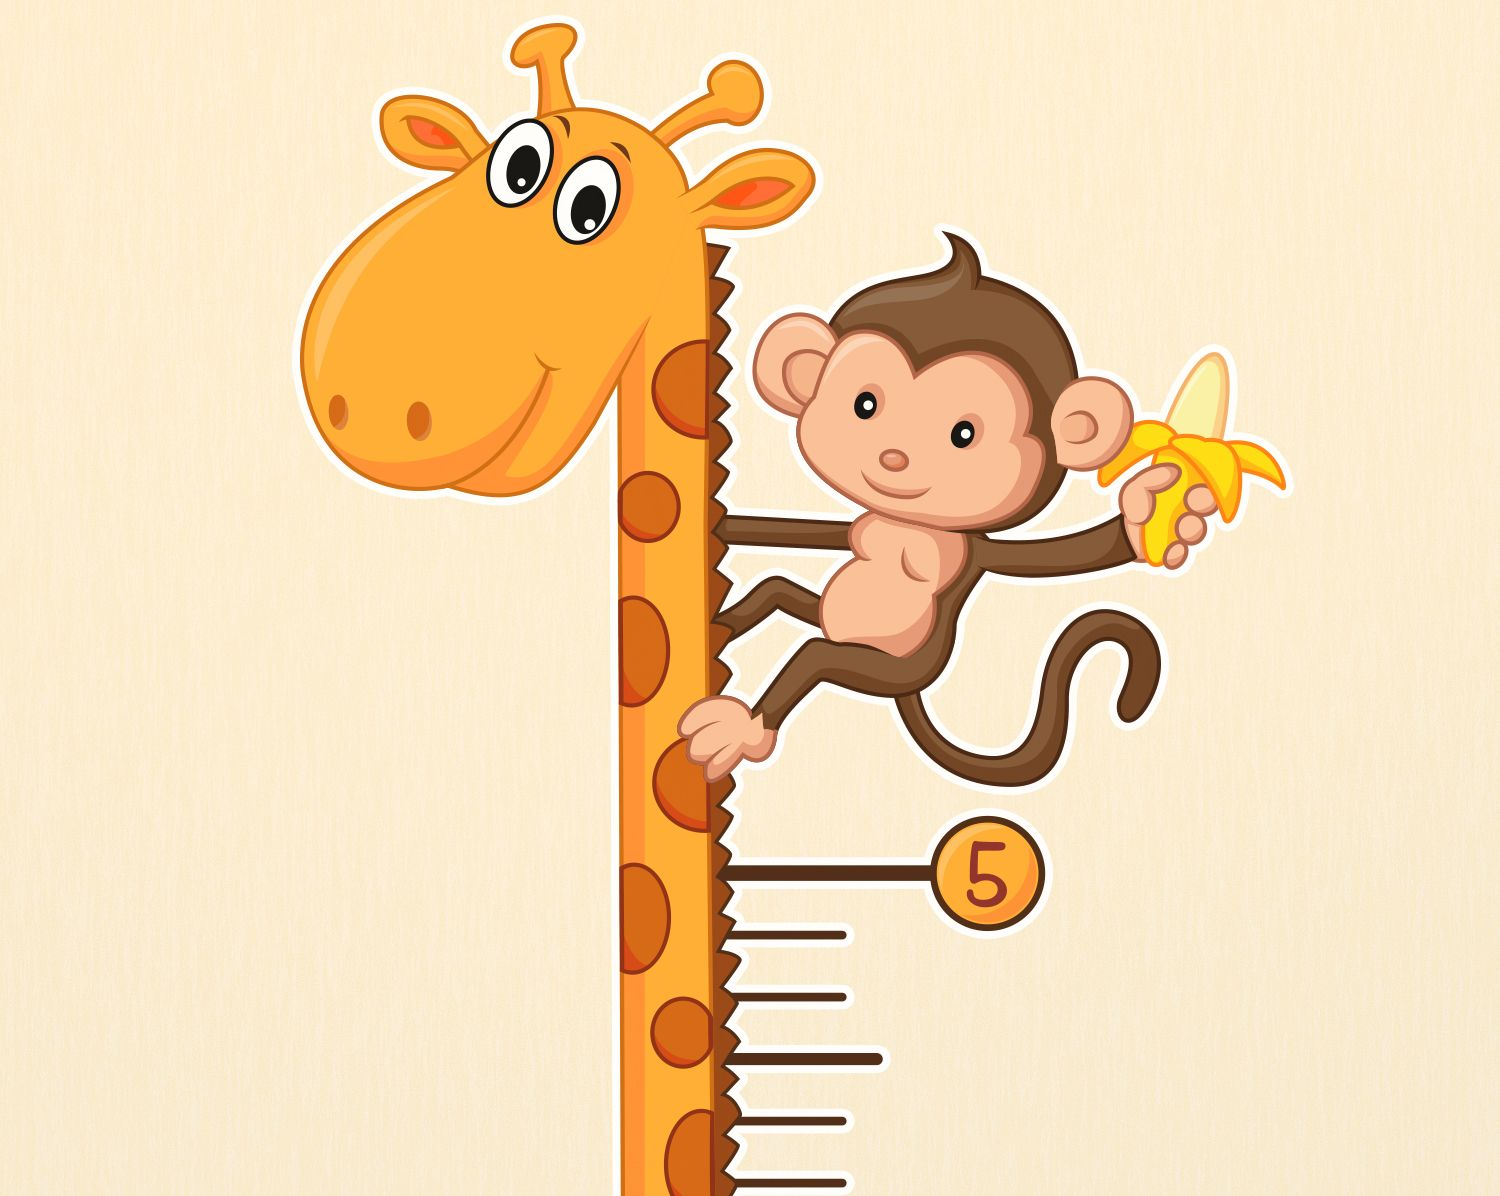 Giraffe growth chart wall decal growth charts giraffe and chart giraffe growth chart wall decal geenschuldenfo Image collections